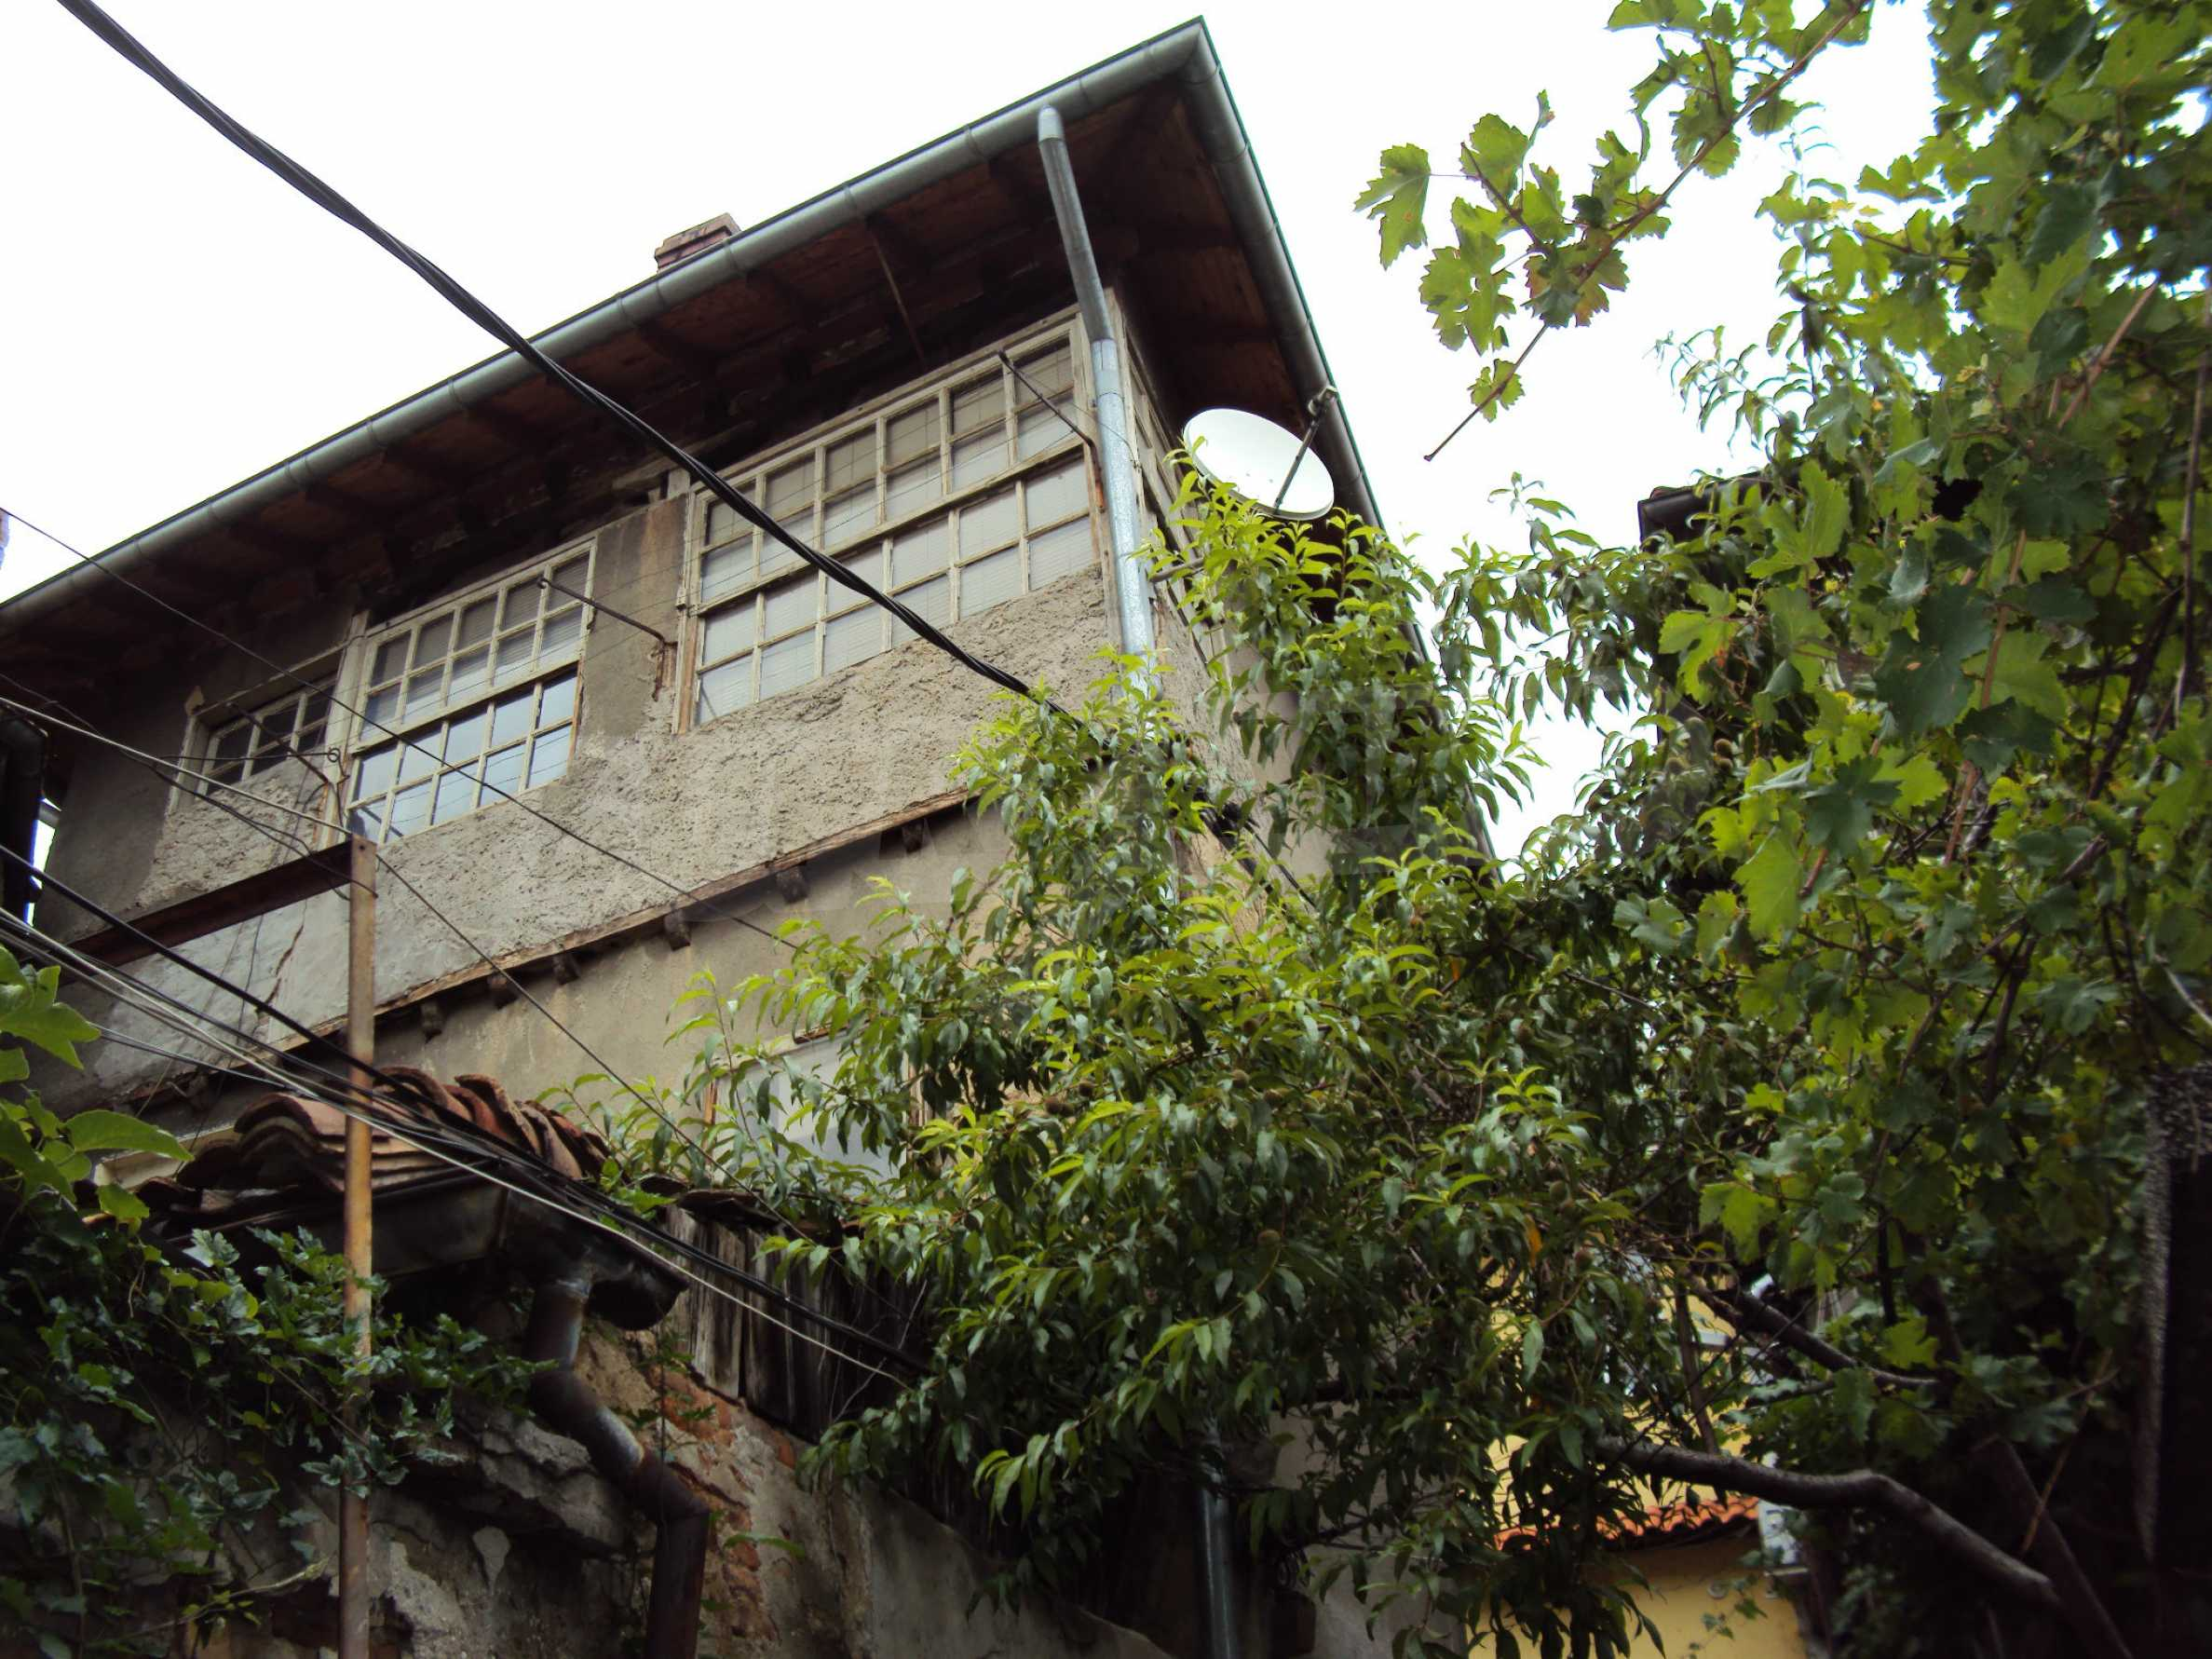 Traditional, spacious house located in the old part of Veliko Tarnovo 2